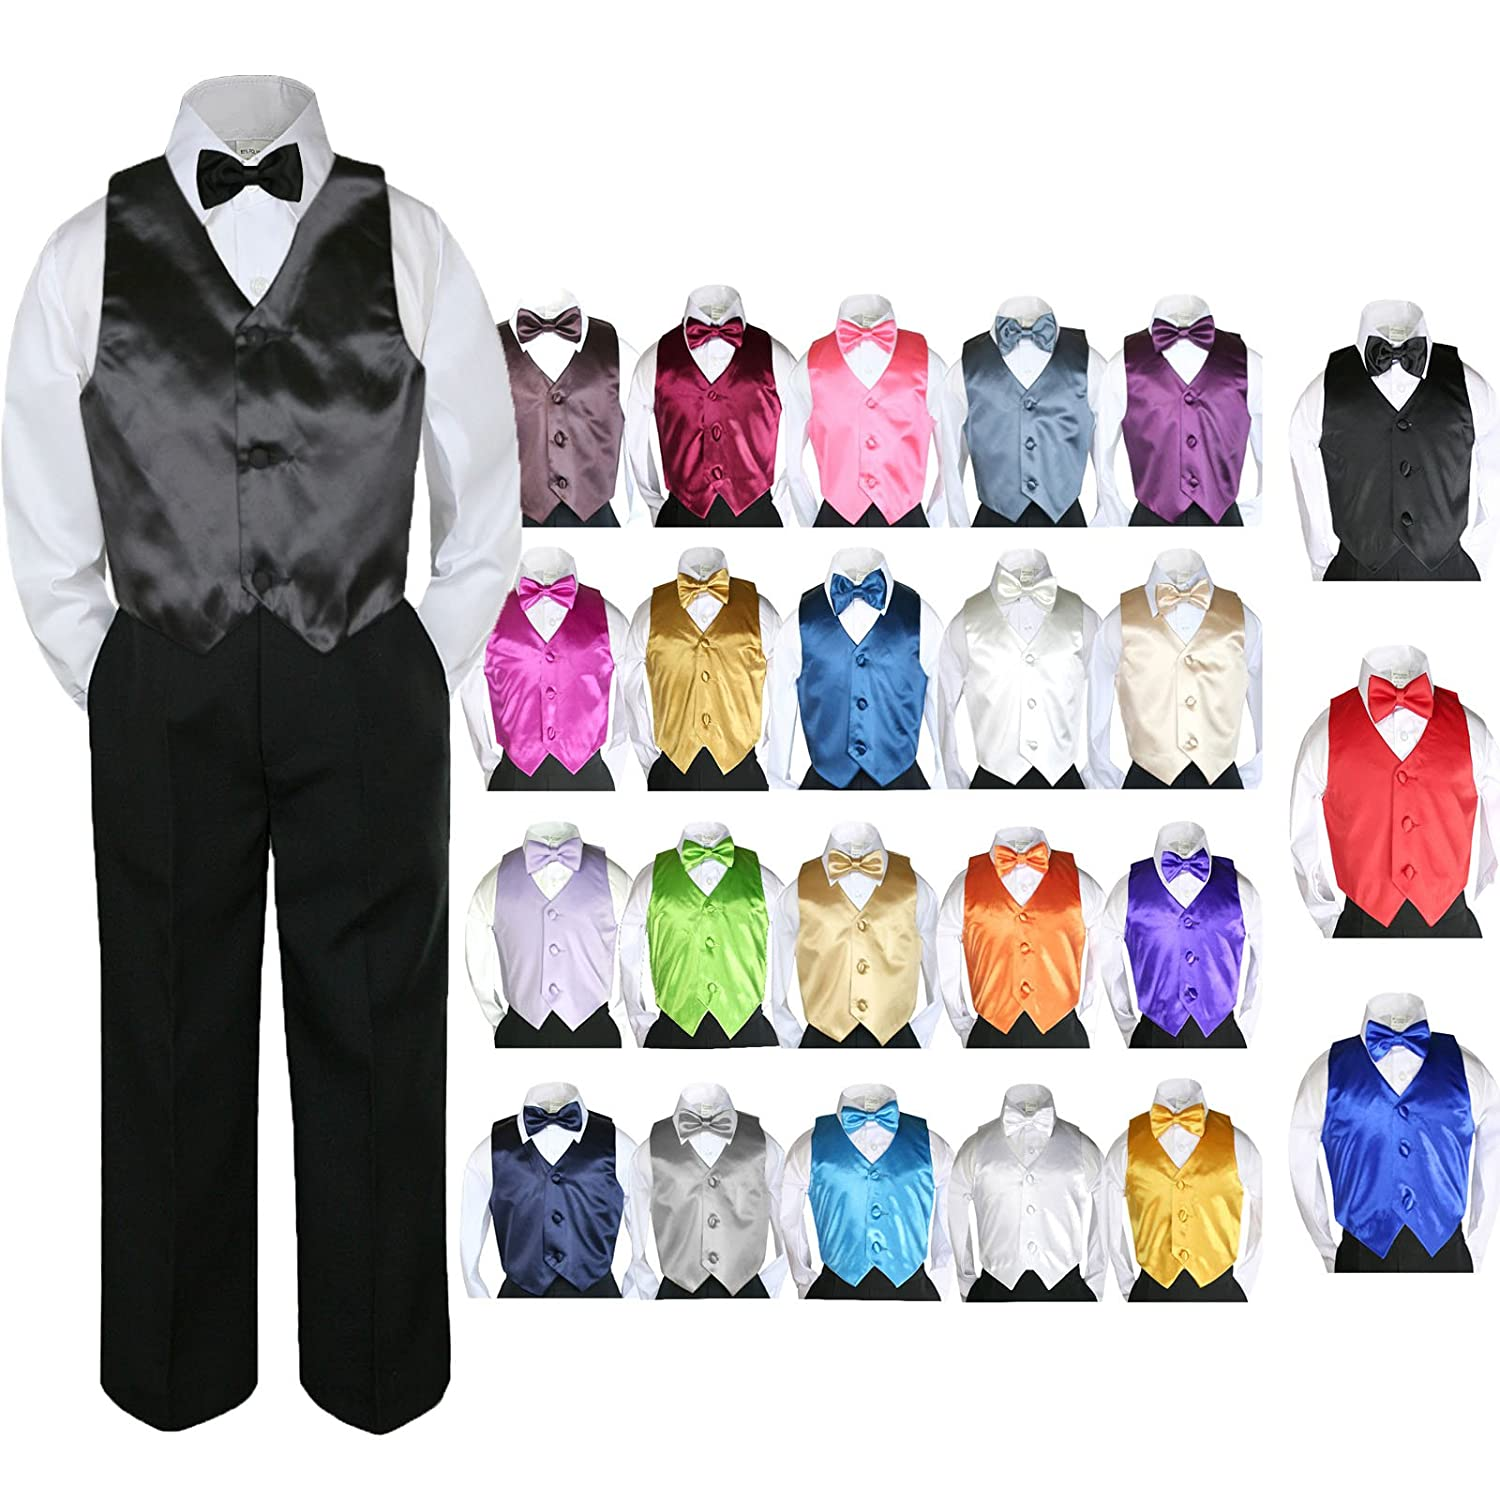 Leadertux 4pc Baby Toddler Kid Boy Party Suit Black Pants Shirt Vest Bow tie Set 8-20